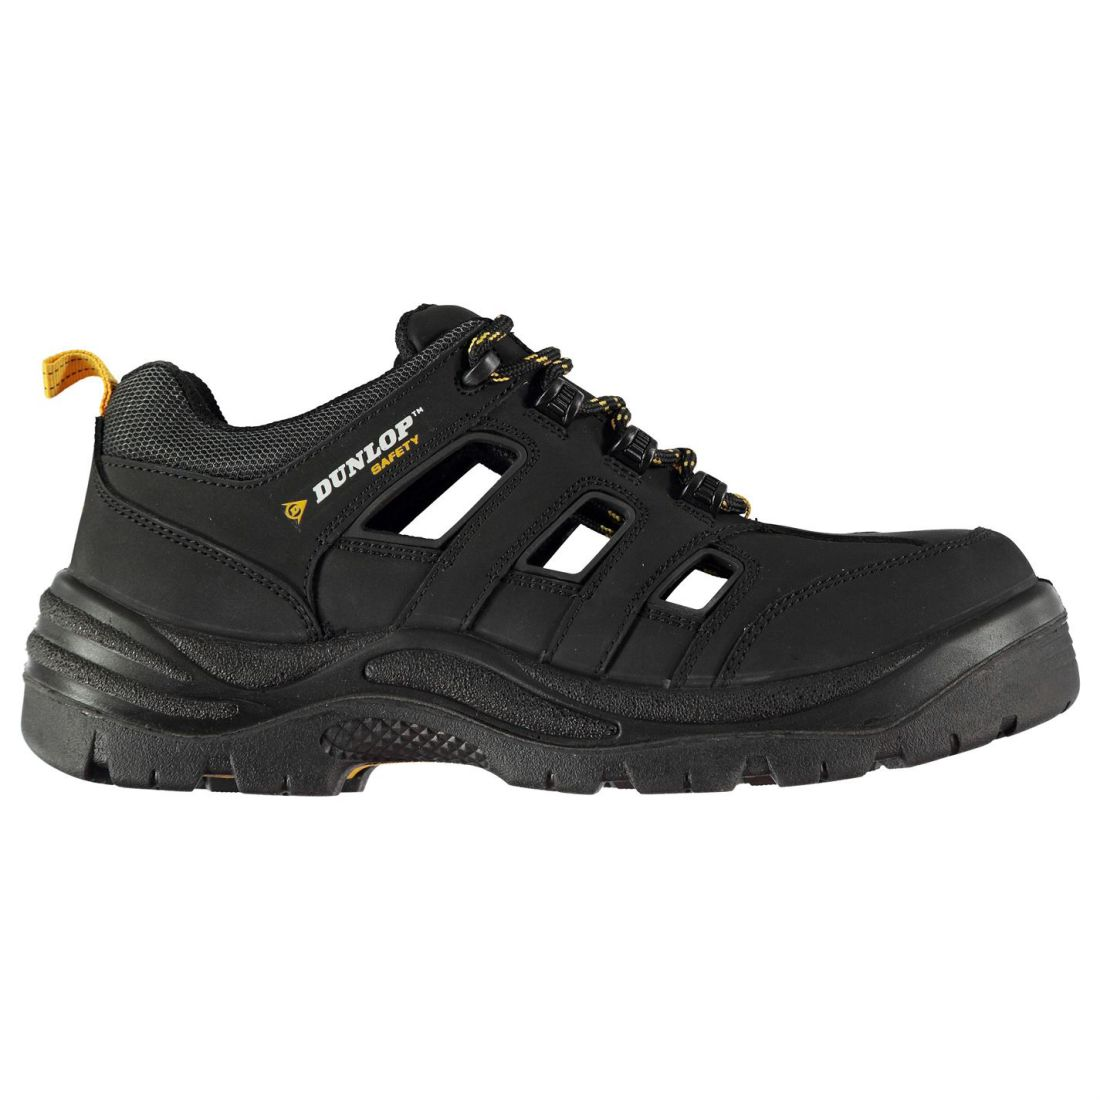 b031c2909be Details about Dunlop Mens Hawaii SB Safety Boots Shoes Lace Up Toe Cap Work  Trainers Leather